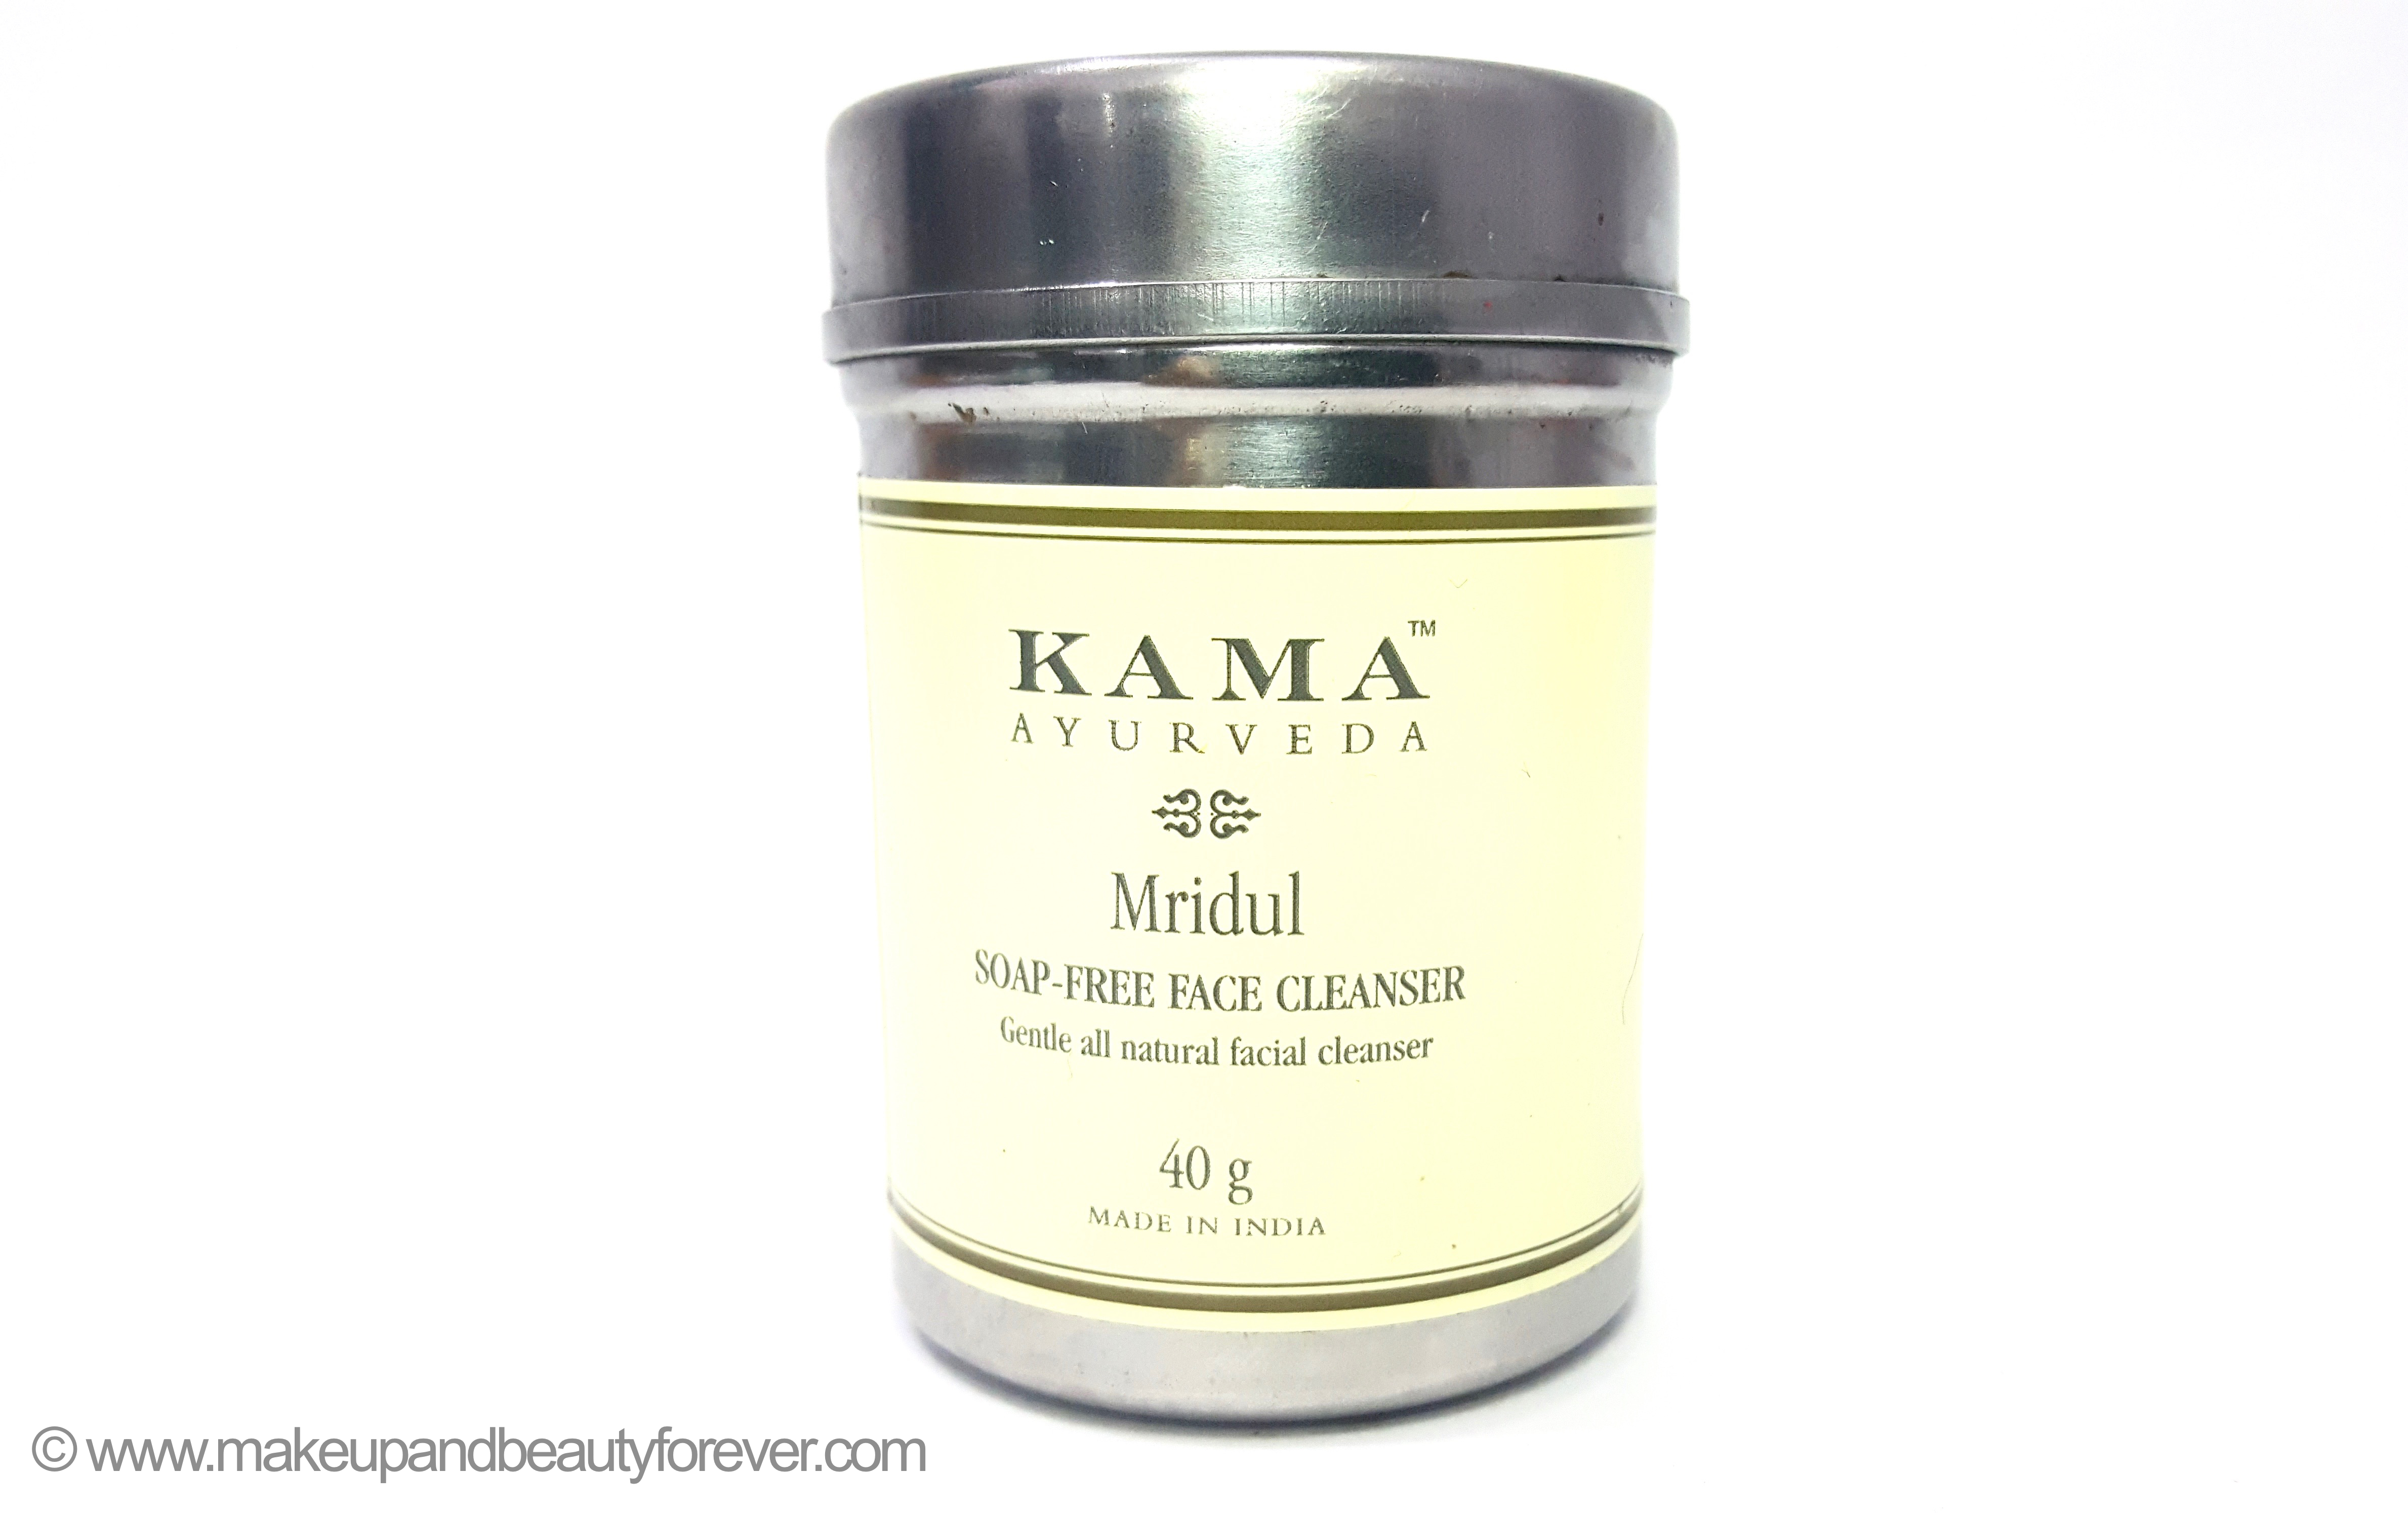 Kama Ayurveda Mridul Soap Free Face Cleanser Review